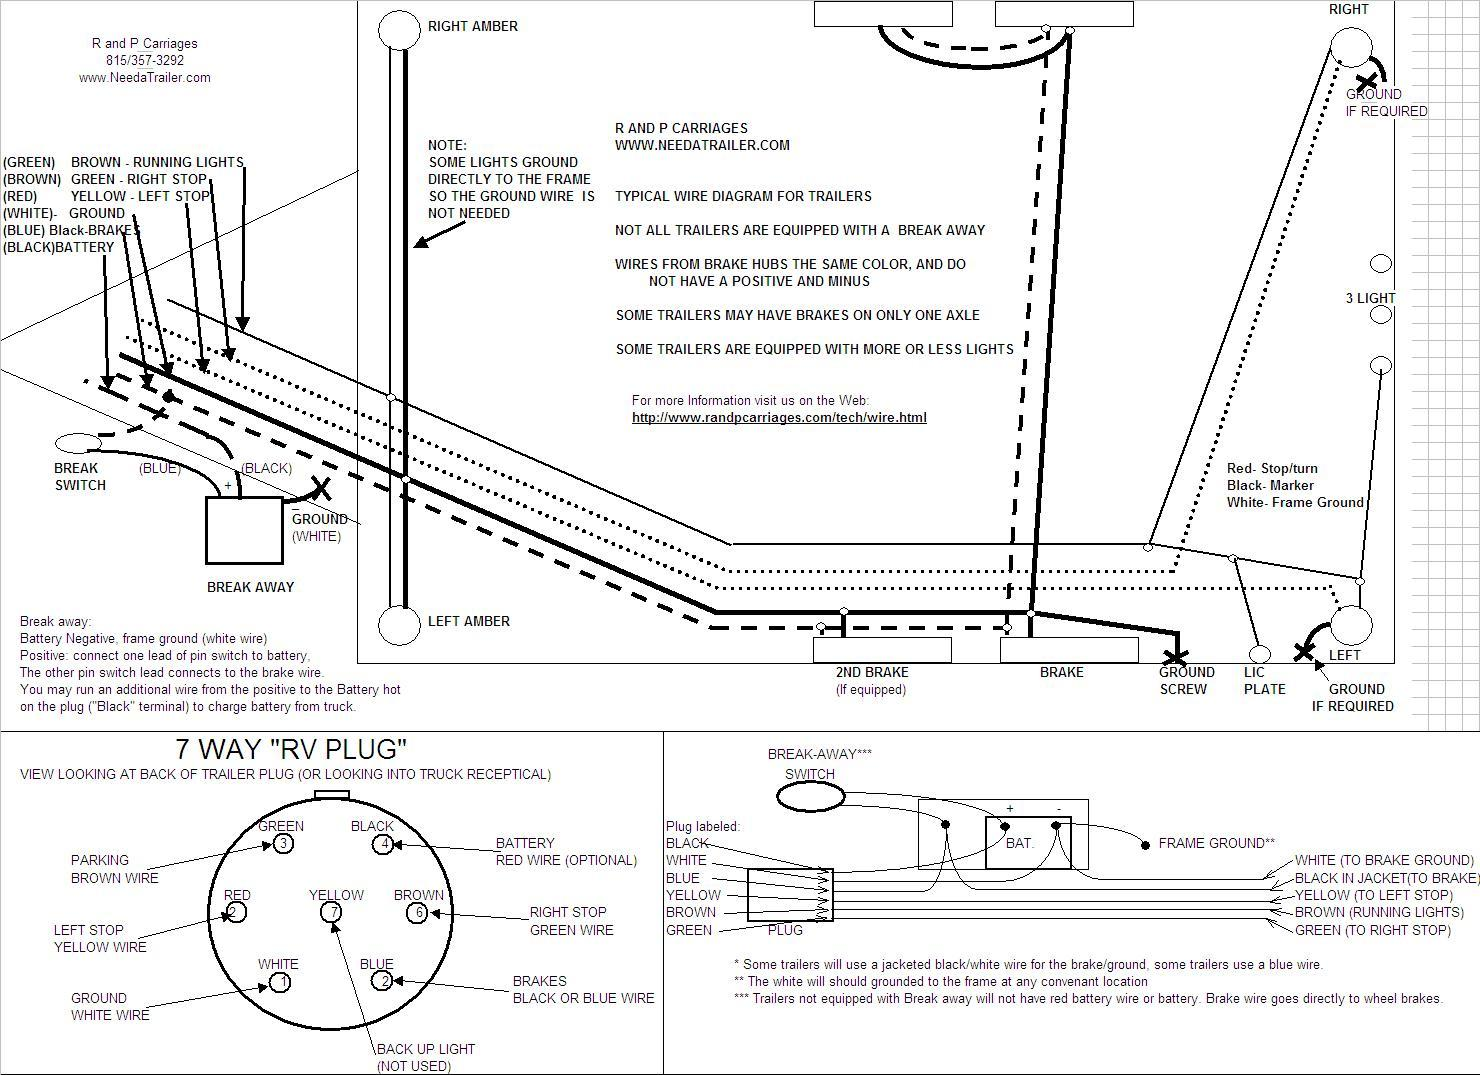 electric trailer brake wiring diagram winch control switch r and p carriages trailers parts service rentals